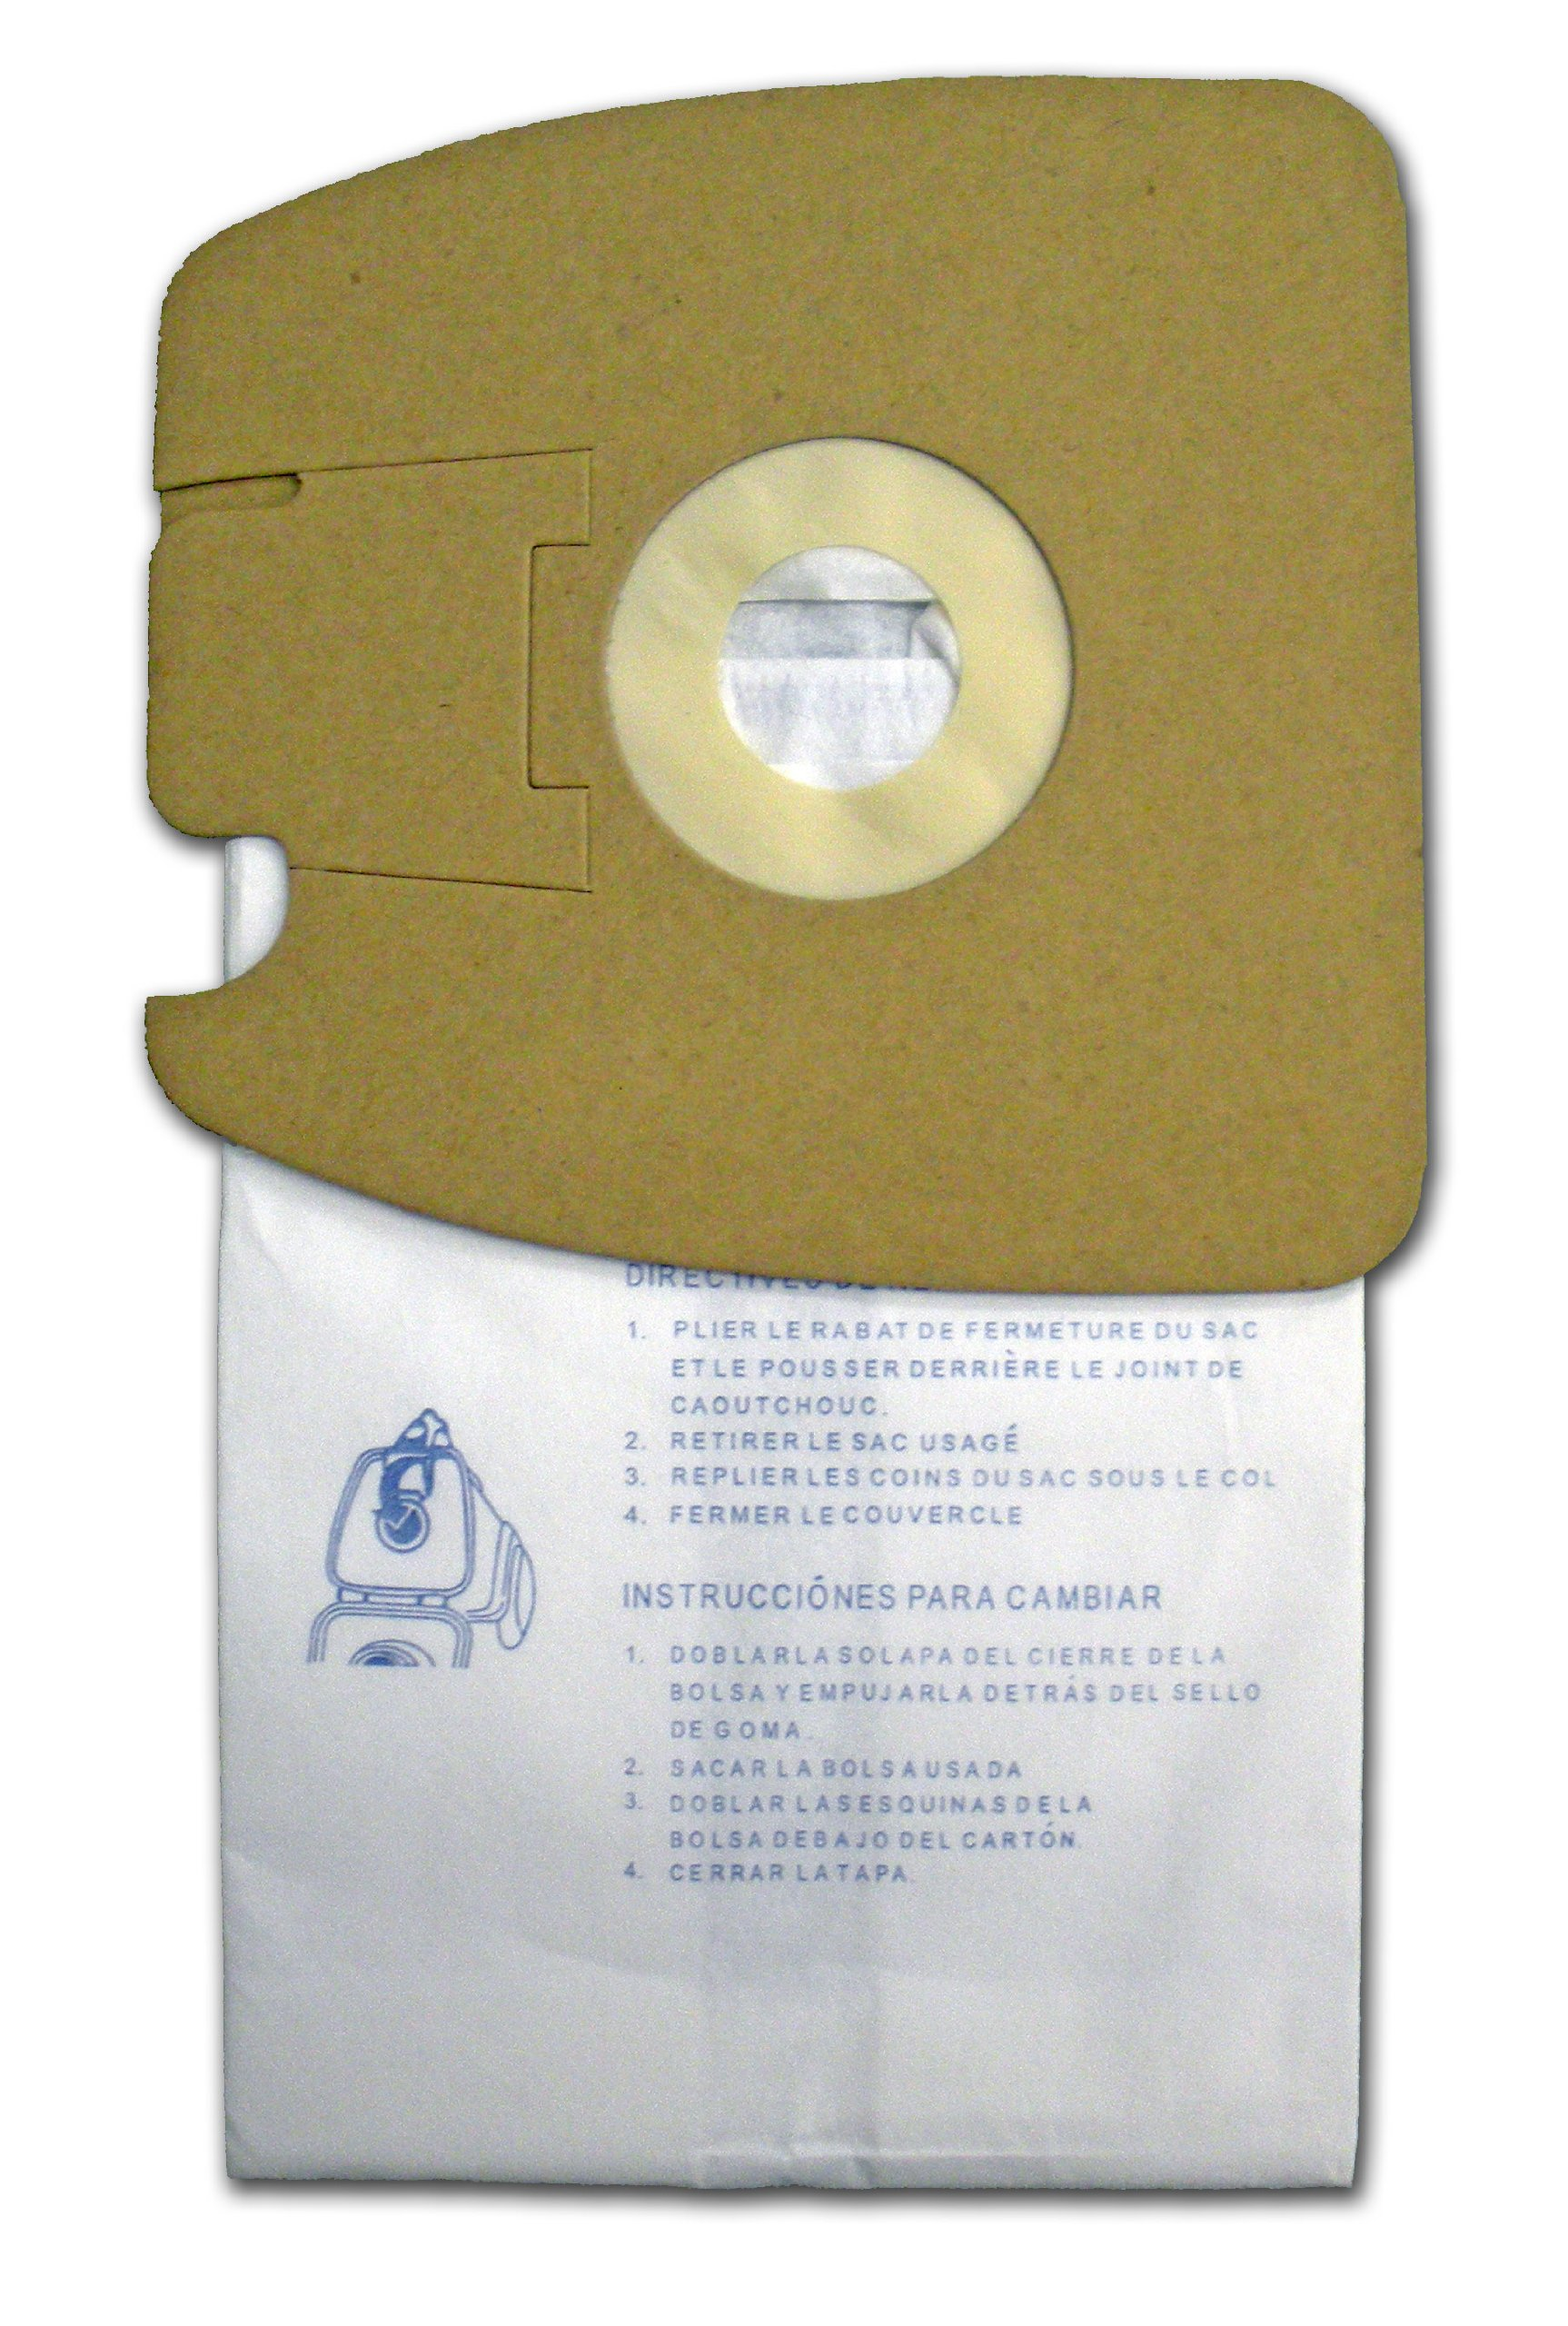 EnviroCare Replacement Vacuum Bags for Eureka Style MM Eureka Mighty Mite 3670 and 3680 Series Canisters 27 Bags